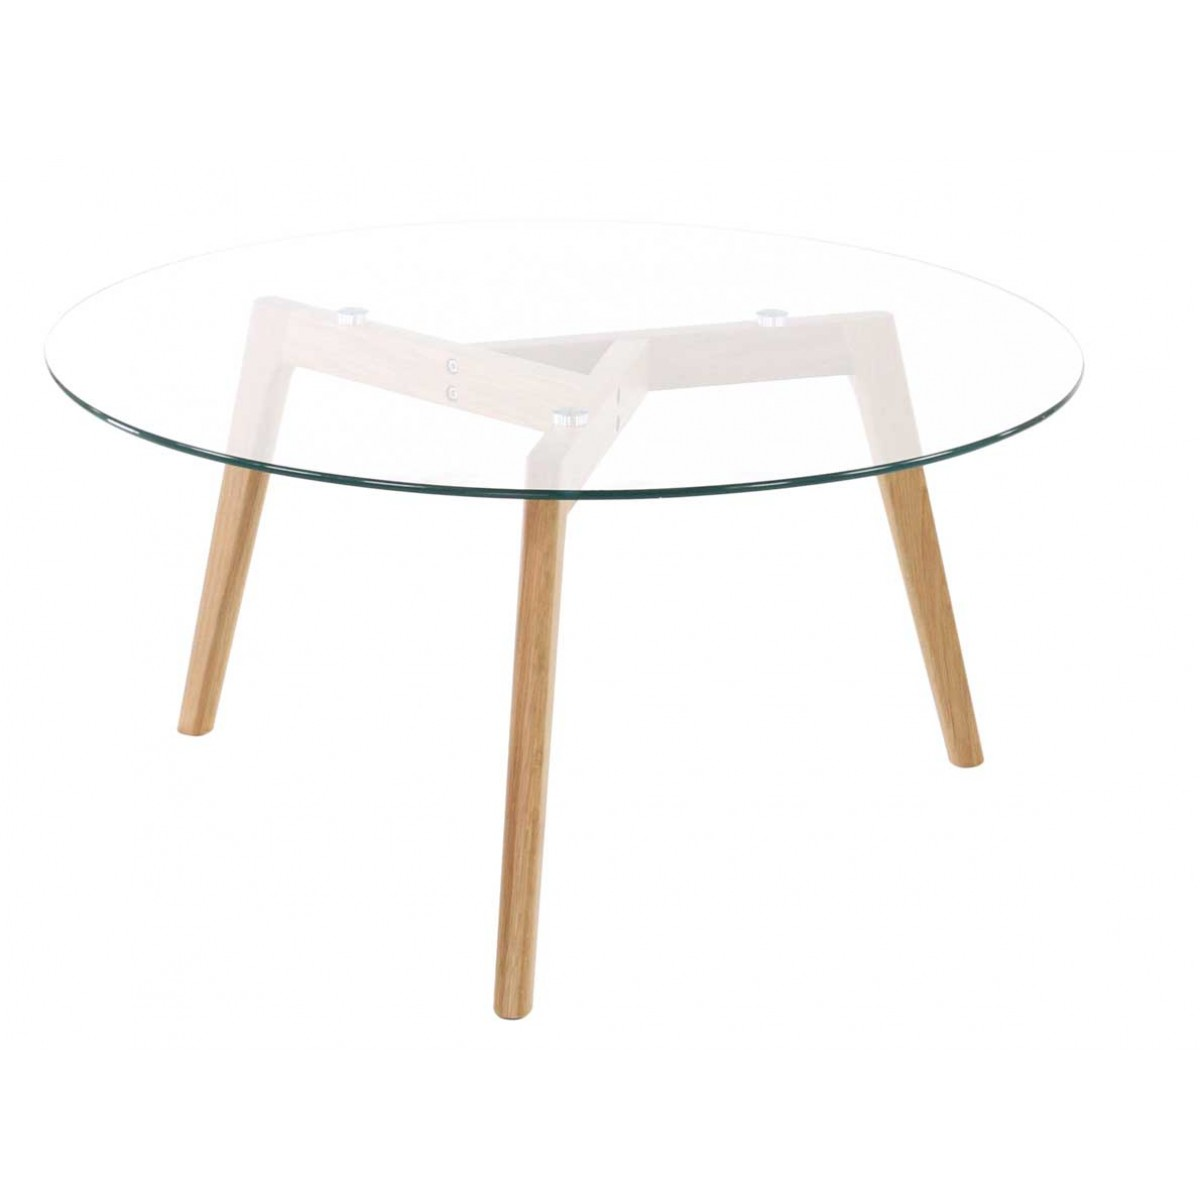 Table basse en verre ronde design scandie mooviin for Table scandinave en verre